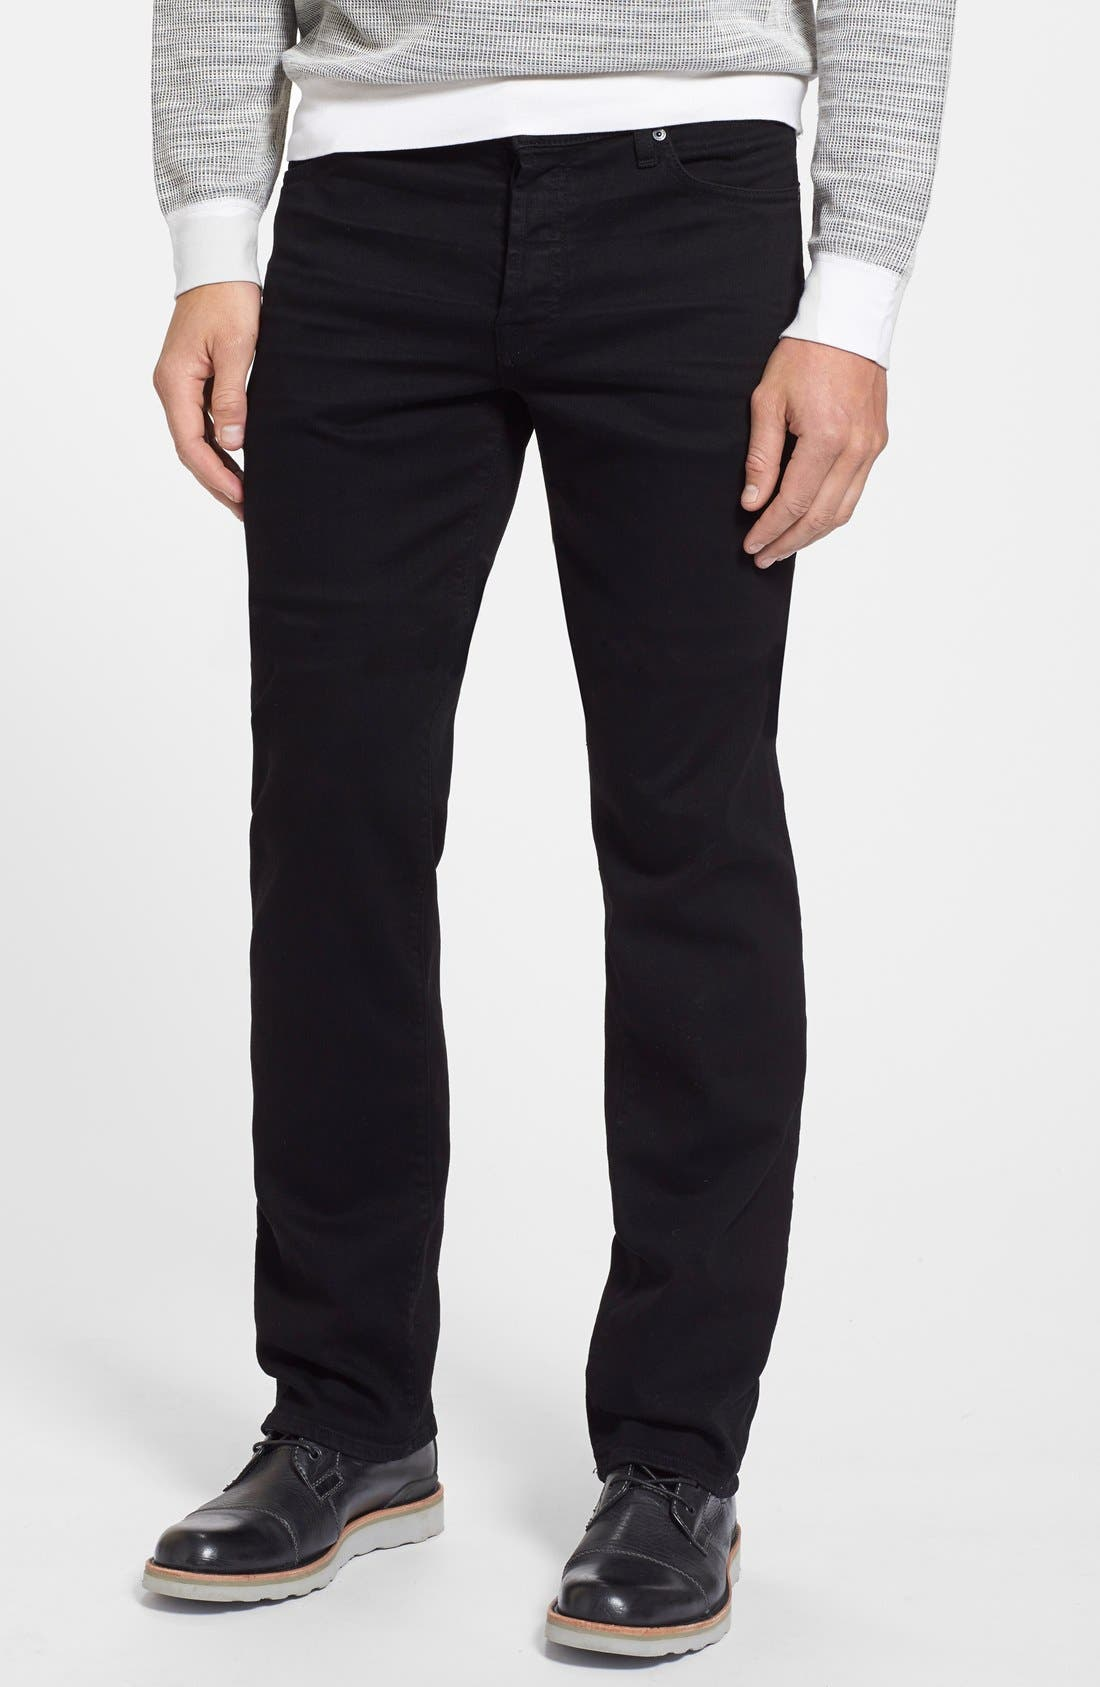 The Standard - Luxe Performance Straight Leg Jeans,                         Main,                         color, Nightshade Black